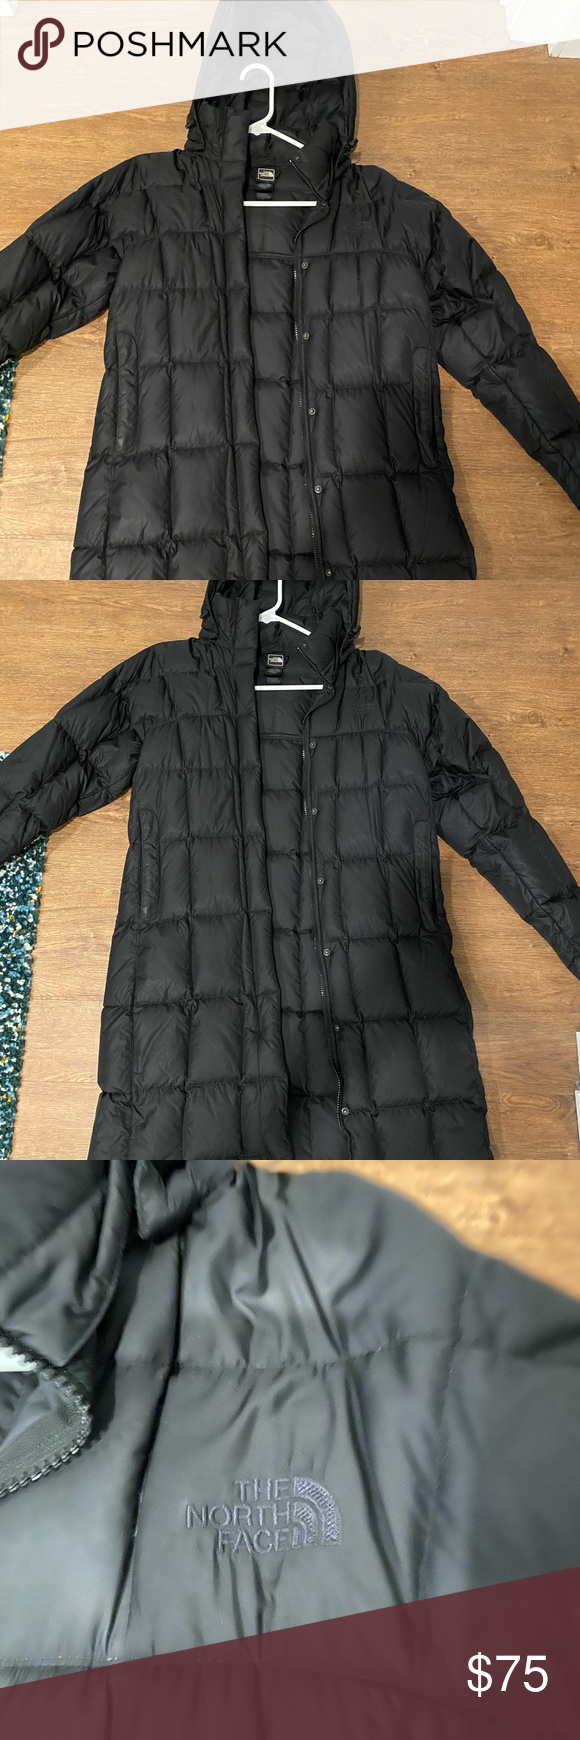 North Face Women S Long Winter Jacket Black Great Condition Gently Used Too Big For Me It S Long Winter Jacket North Face Women Womens Long Winter Jackets [ 1740 x 580 Pixel ]